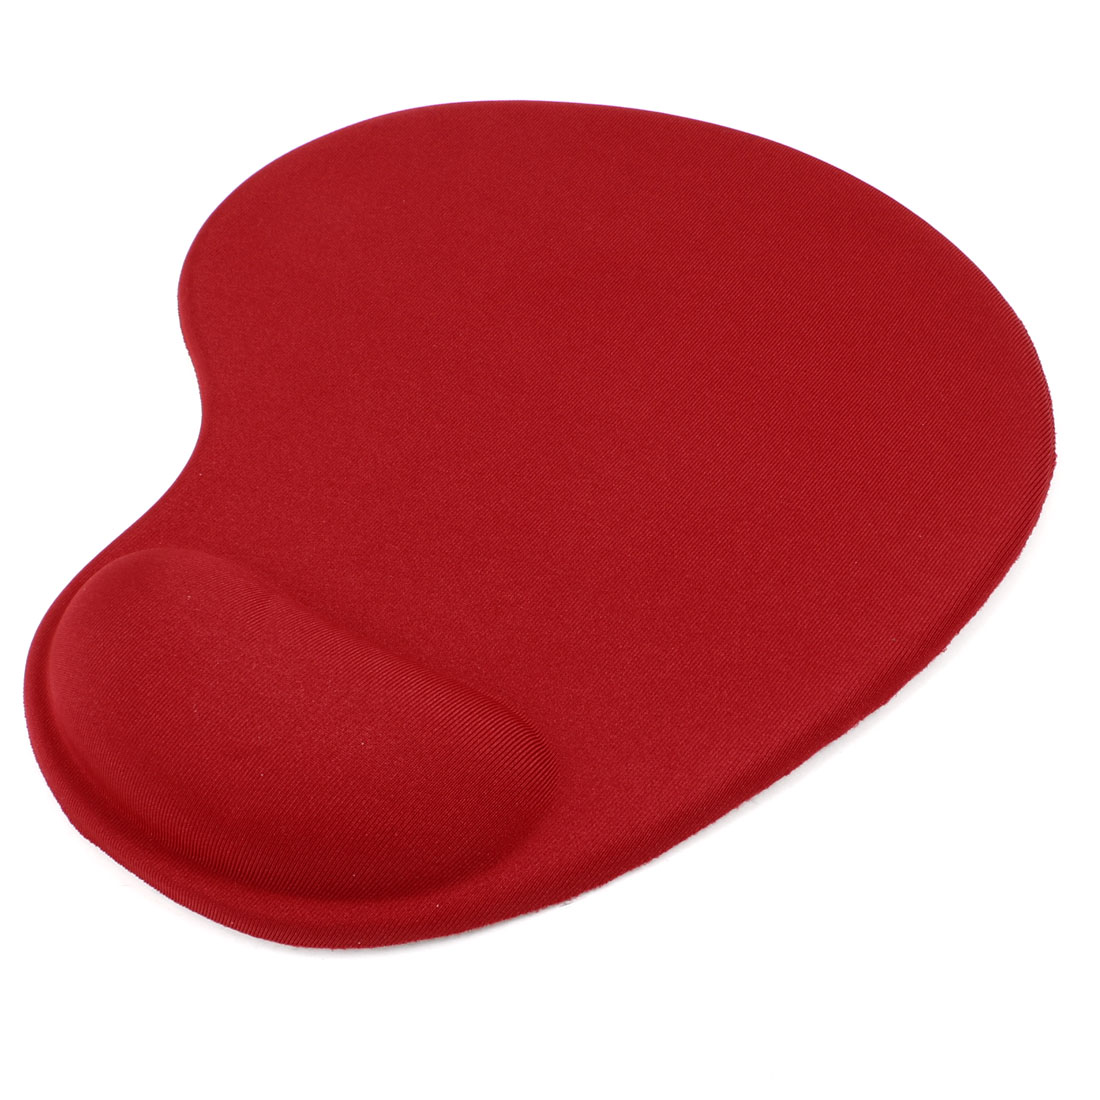 Red Silicone Gel Wrist Comfort Rest Mouse Pad Mat for Laptop Desktop